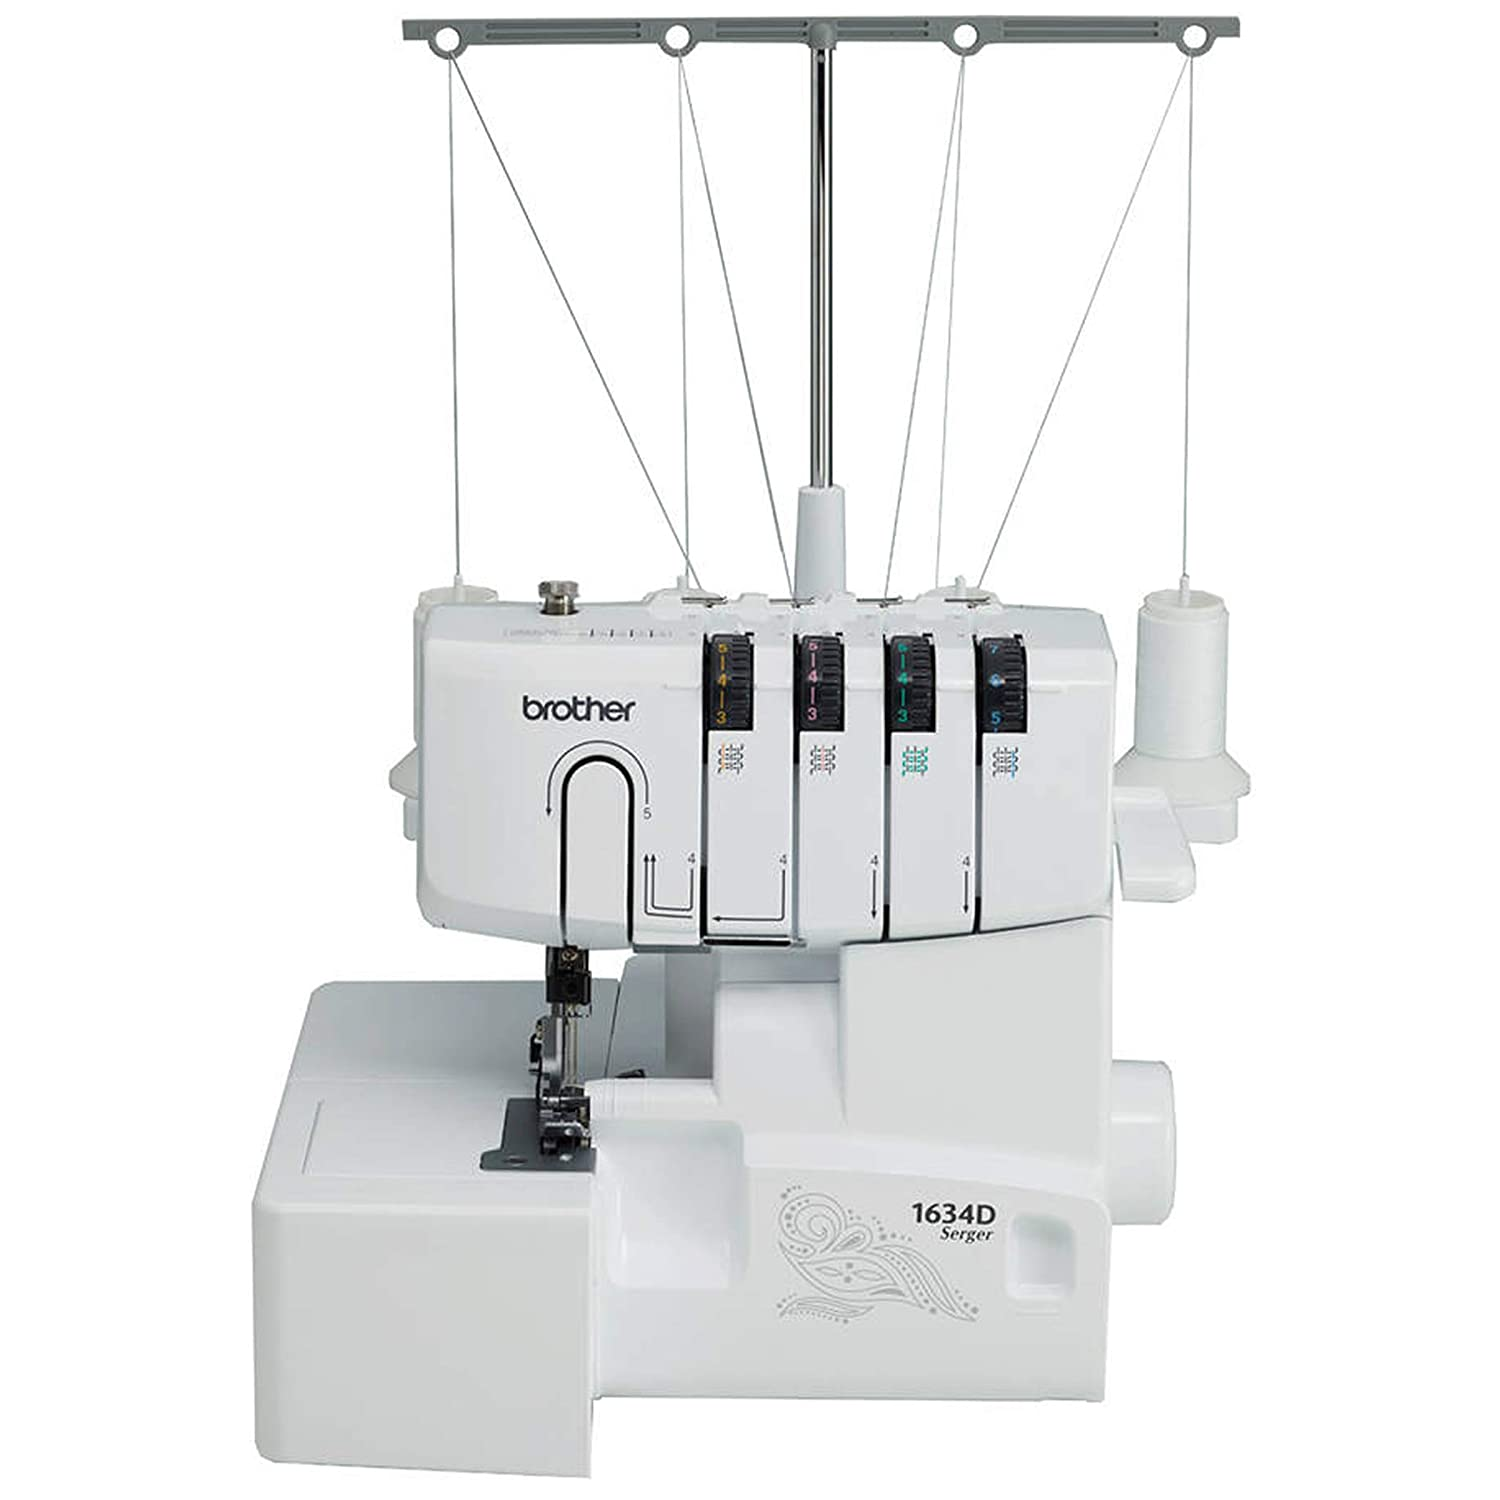 Brother R1634D Refurbished 3 or 4 Thread Serger with Differential Feed, White